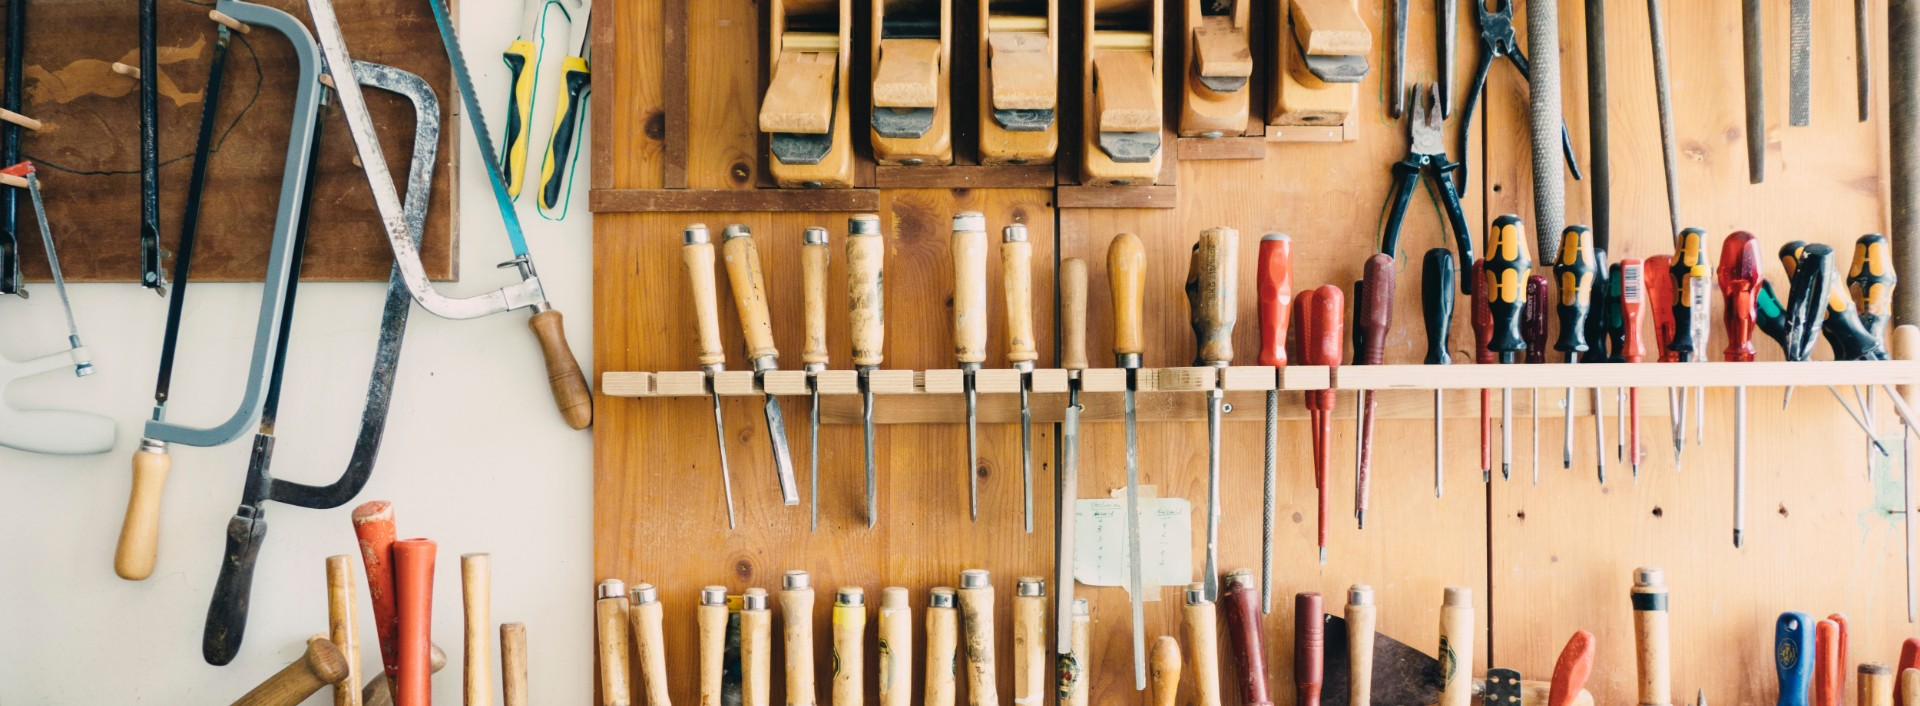 An assortment of tools, such as screwdrivers, hammers, and saws hang on a wall. These are all useful tools vocabulary in English.